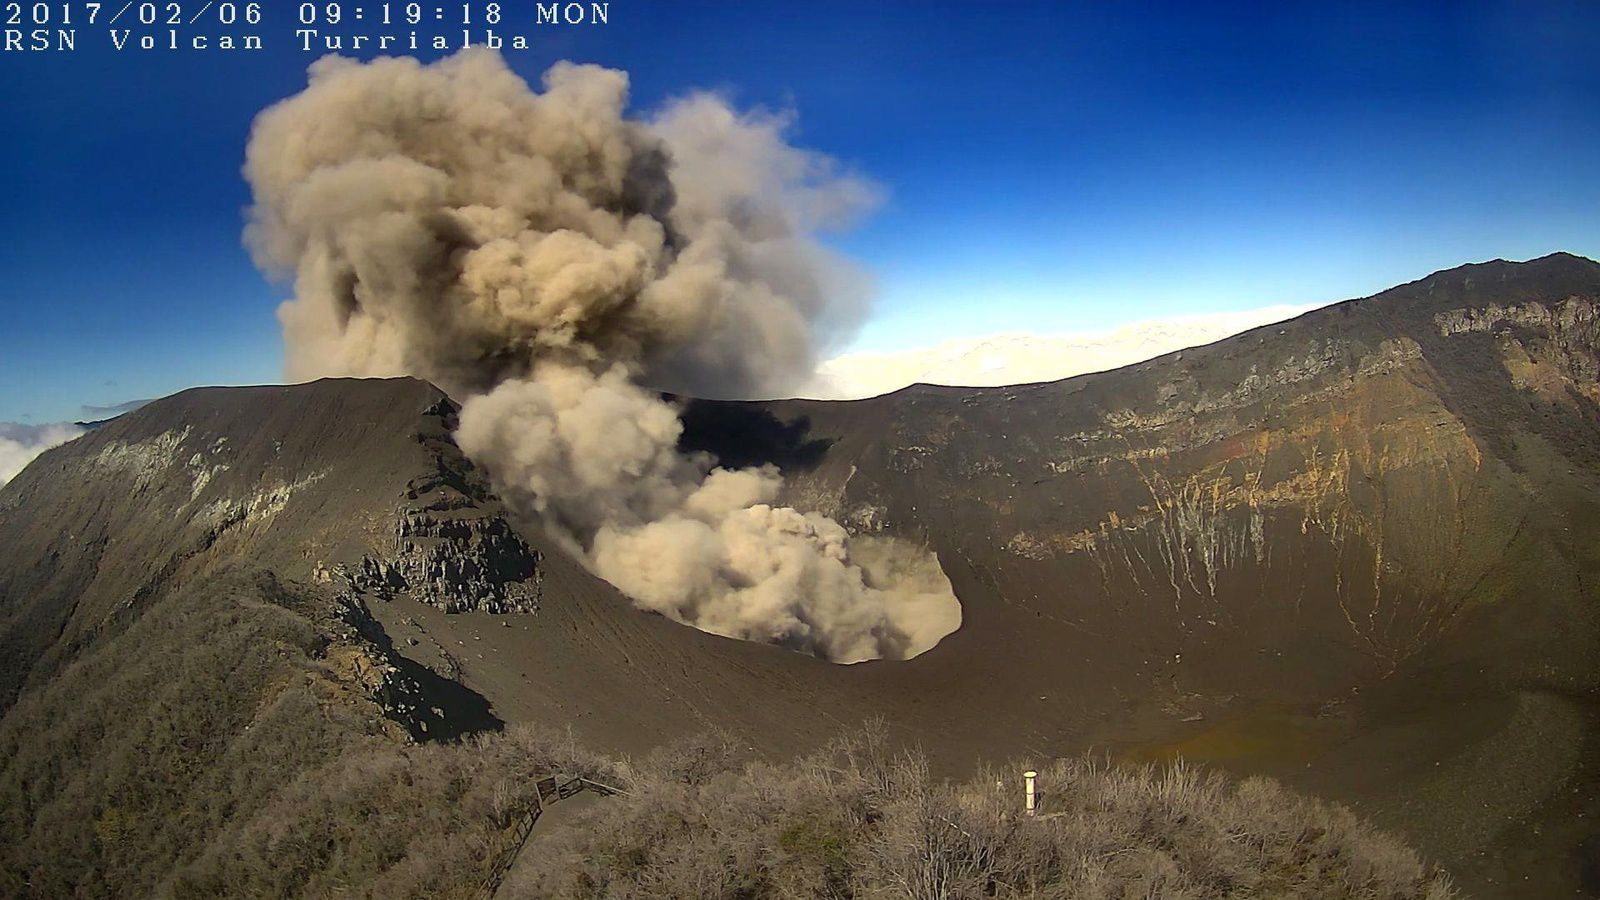 Turrialba - 06.02.2017 / 9h19 - webcam RSN